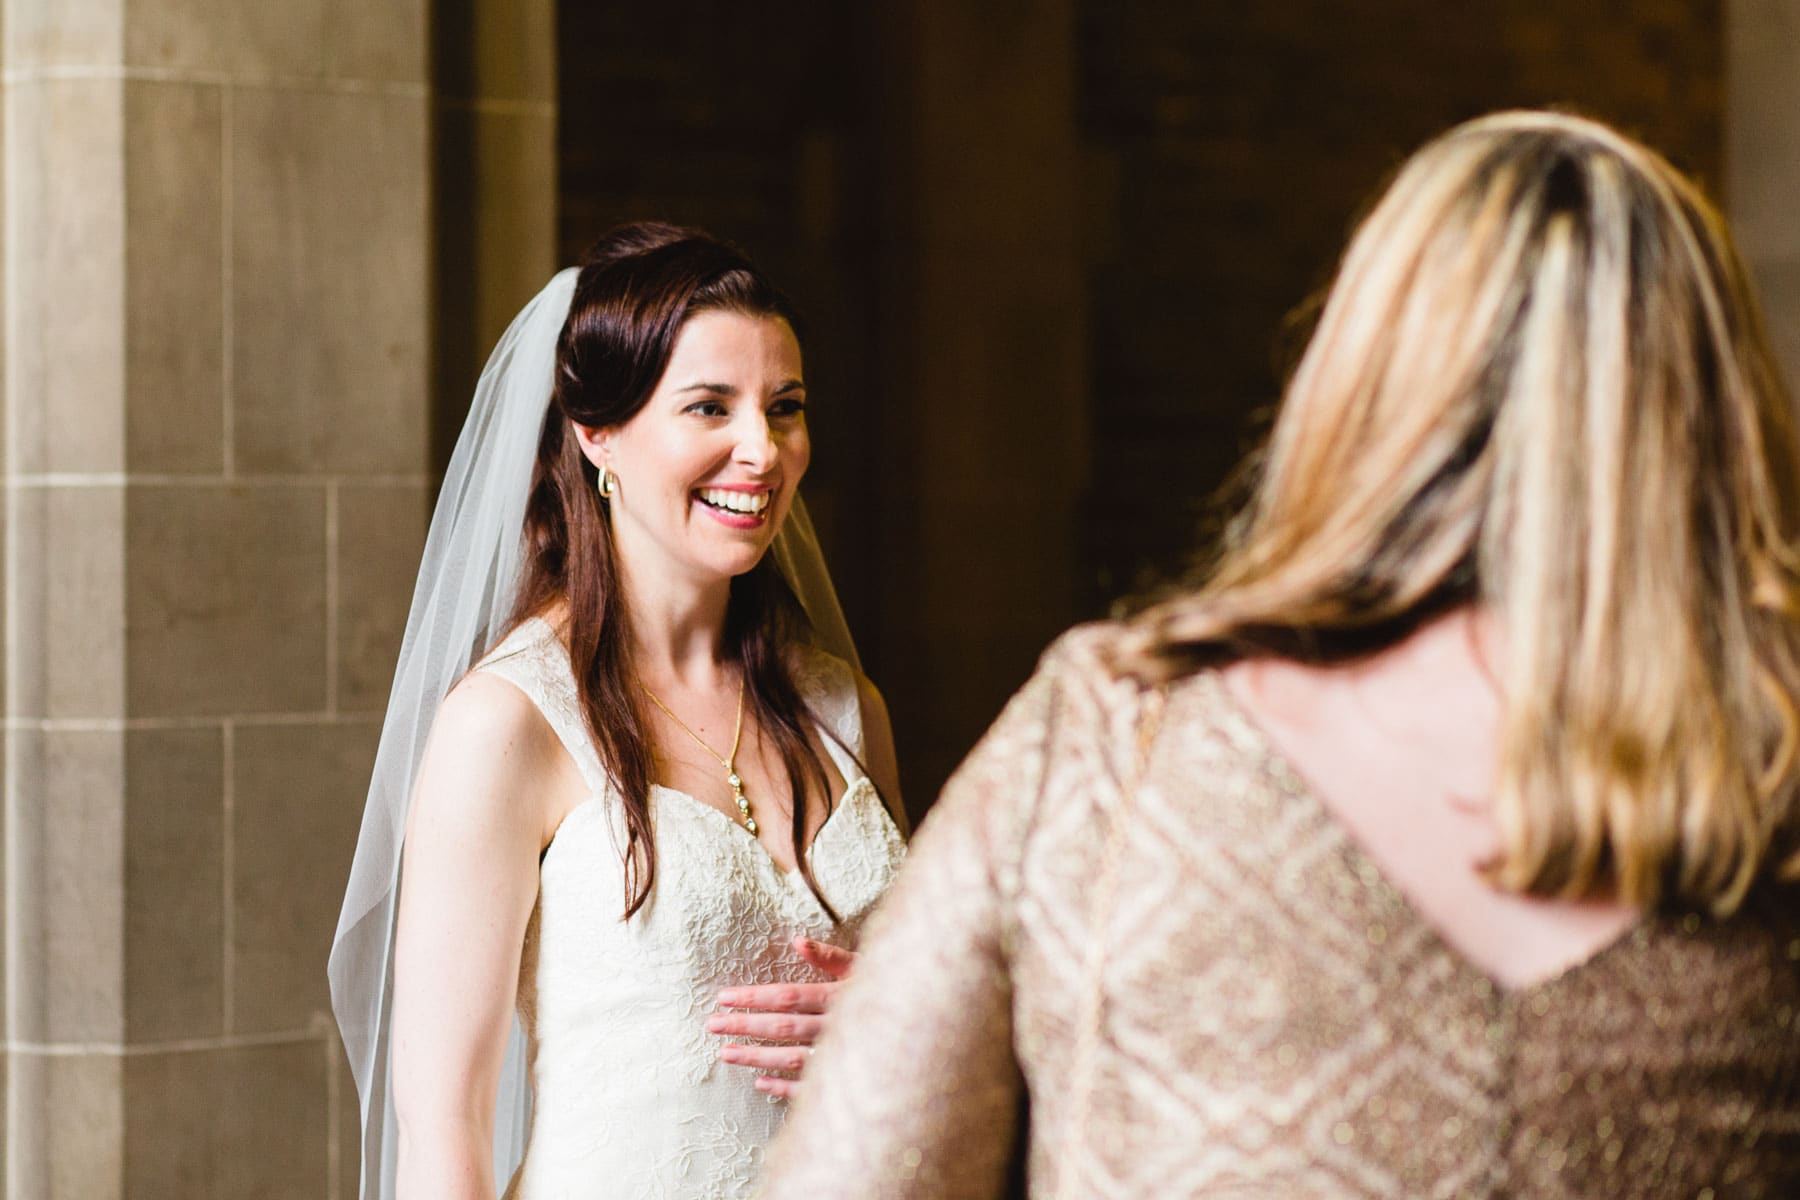 The bride shares a laugh with a friend while standing against a stone wall in this Hart House wedding photo.